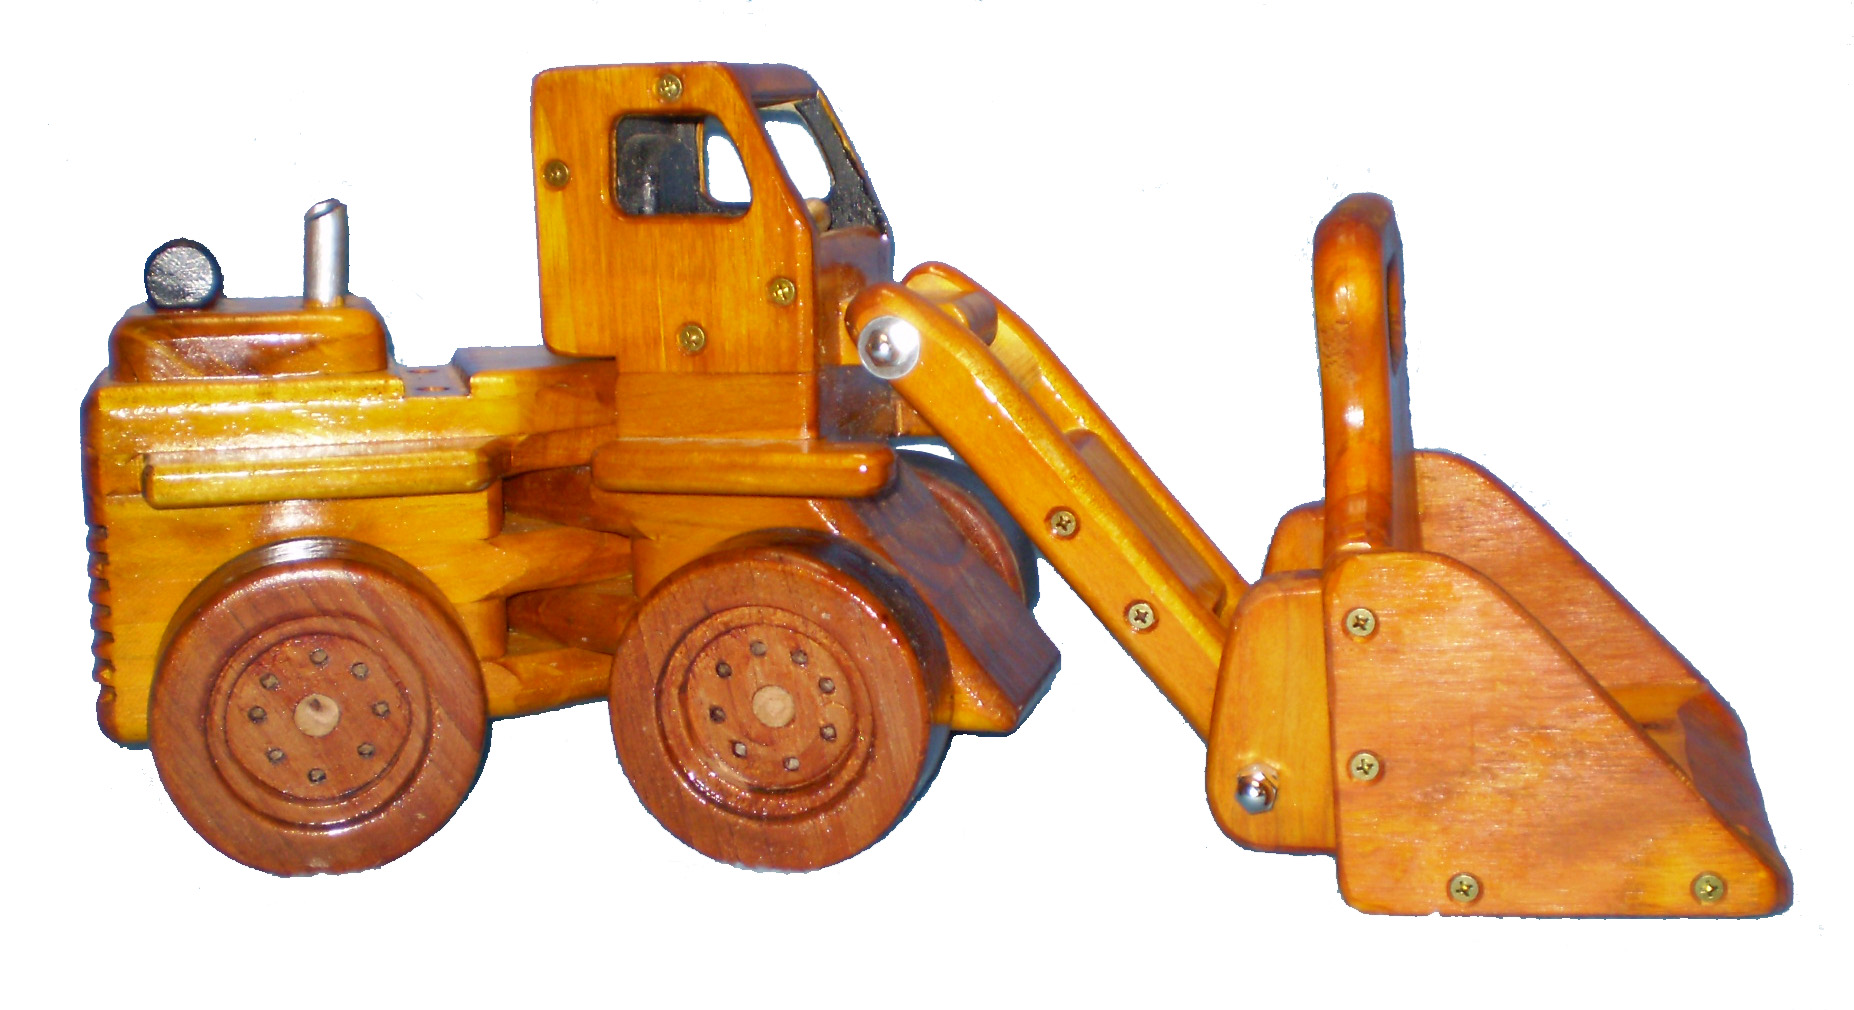 Wooden toy front end loader